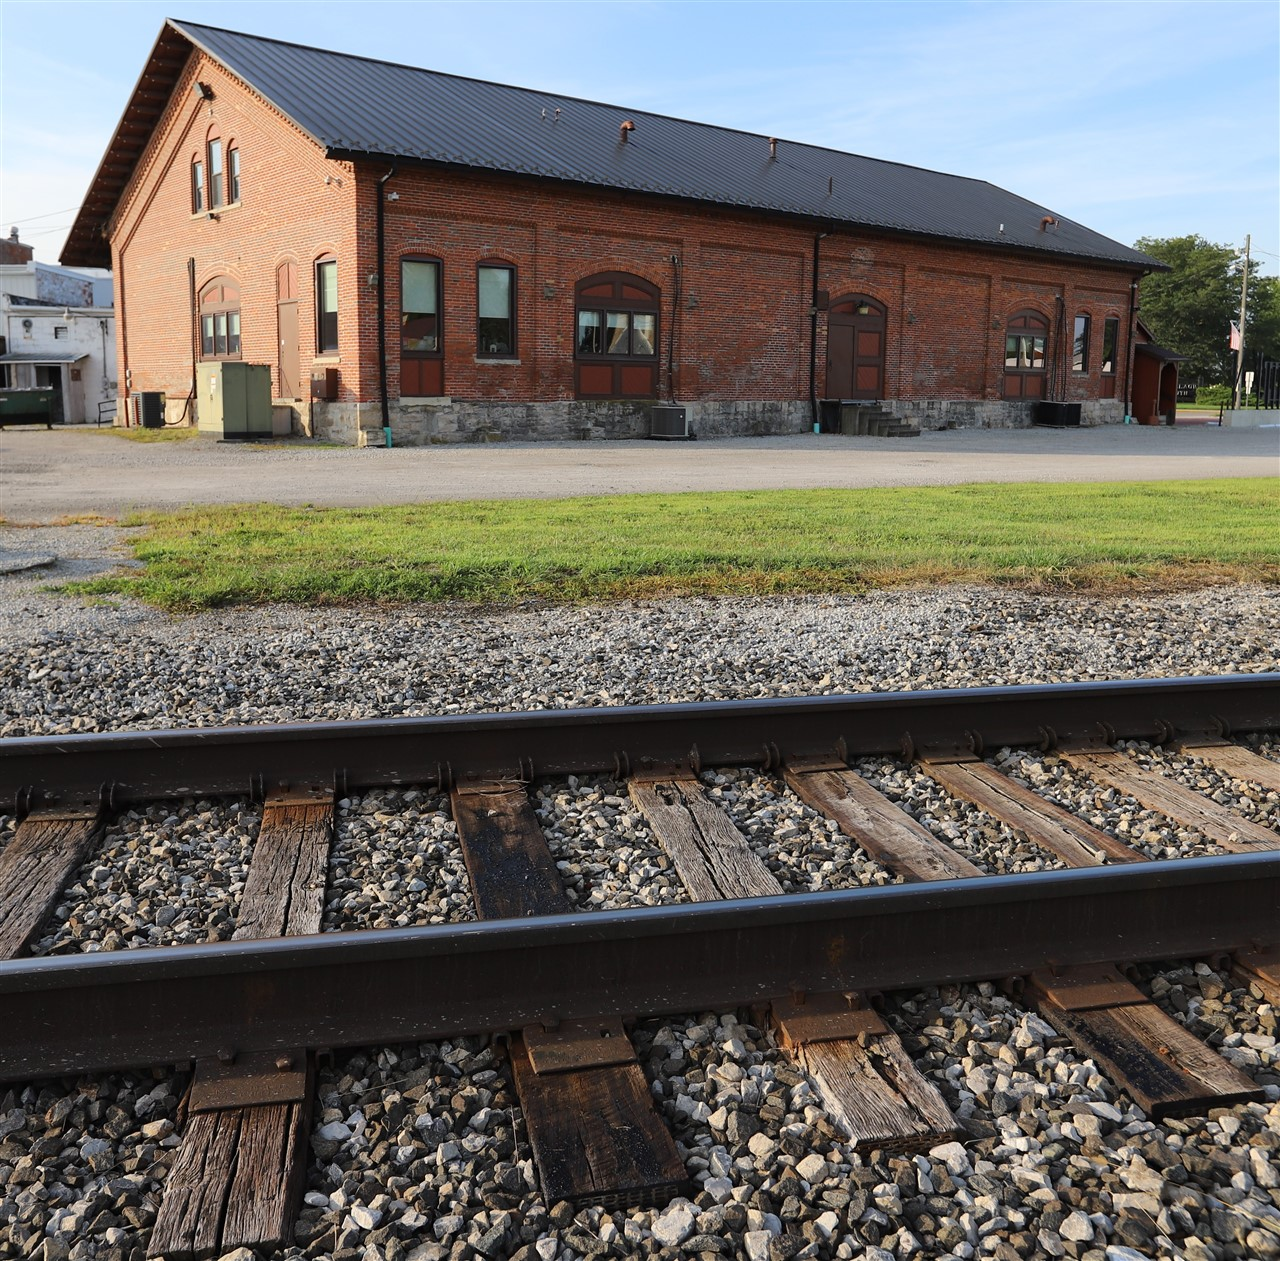 2018 08 31 4 Forest OH Train Depot.jpg